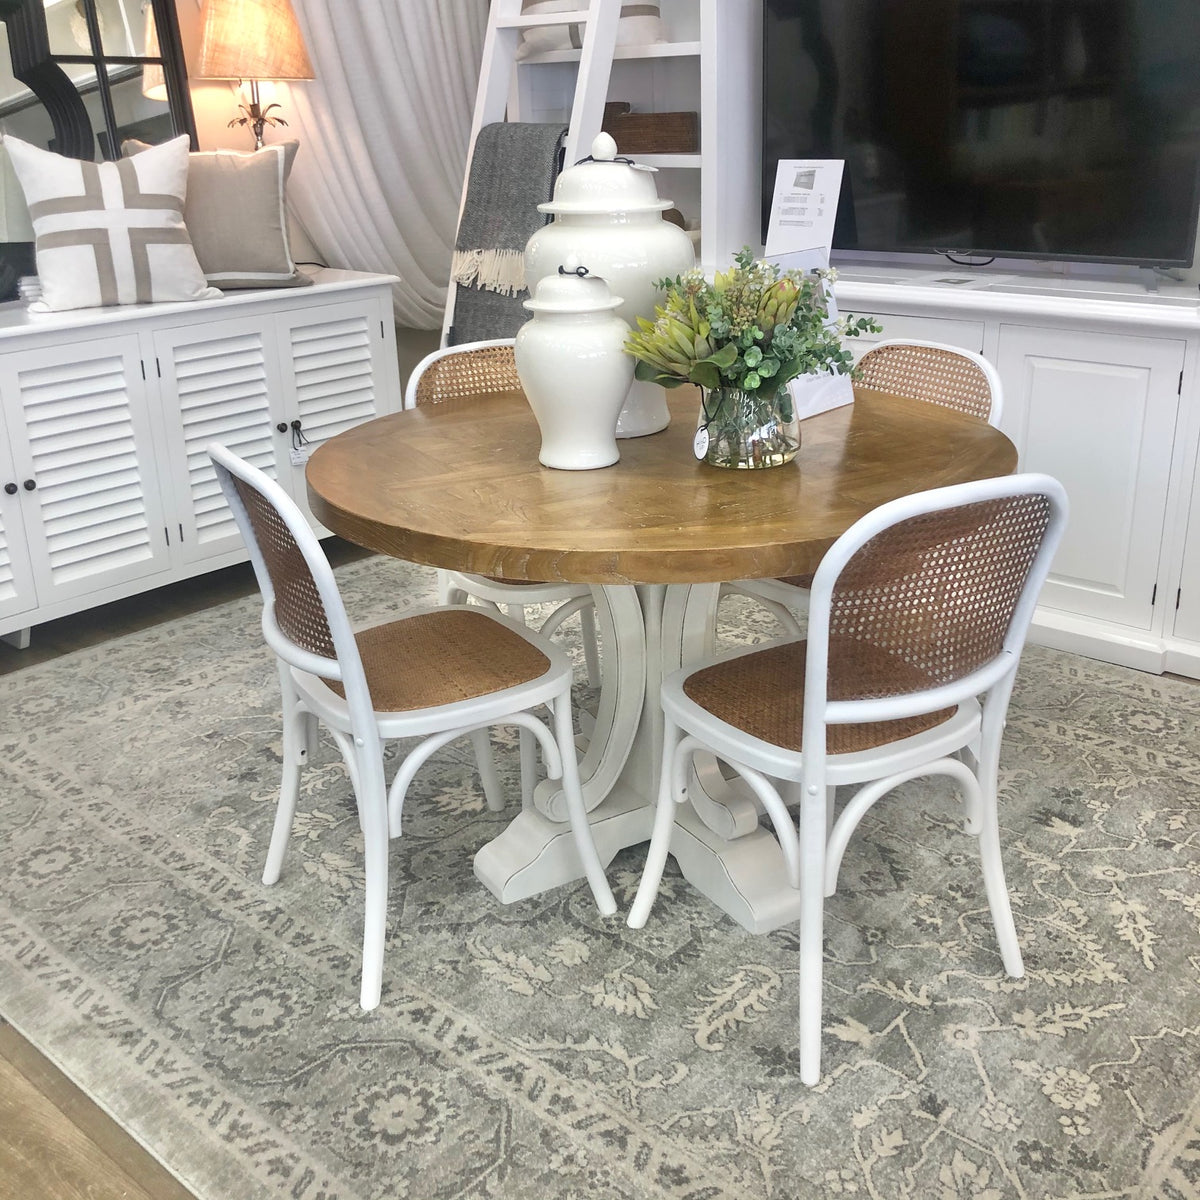 Hamptons Dining Table Shop Online Furniture Shipping Australia Wide Henry Oliver Co